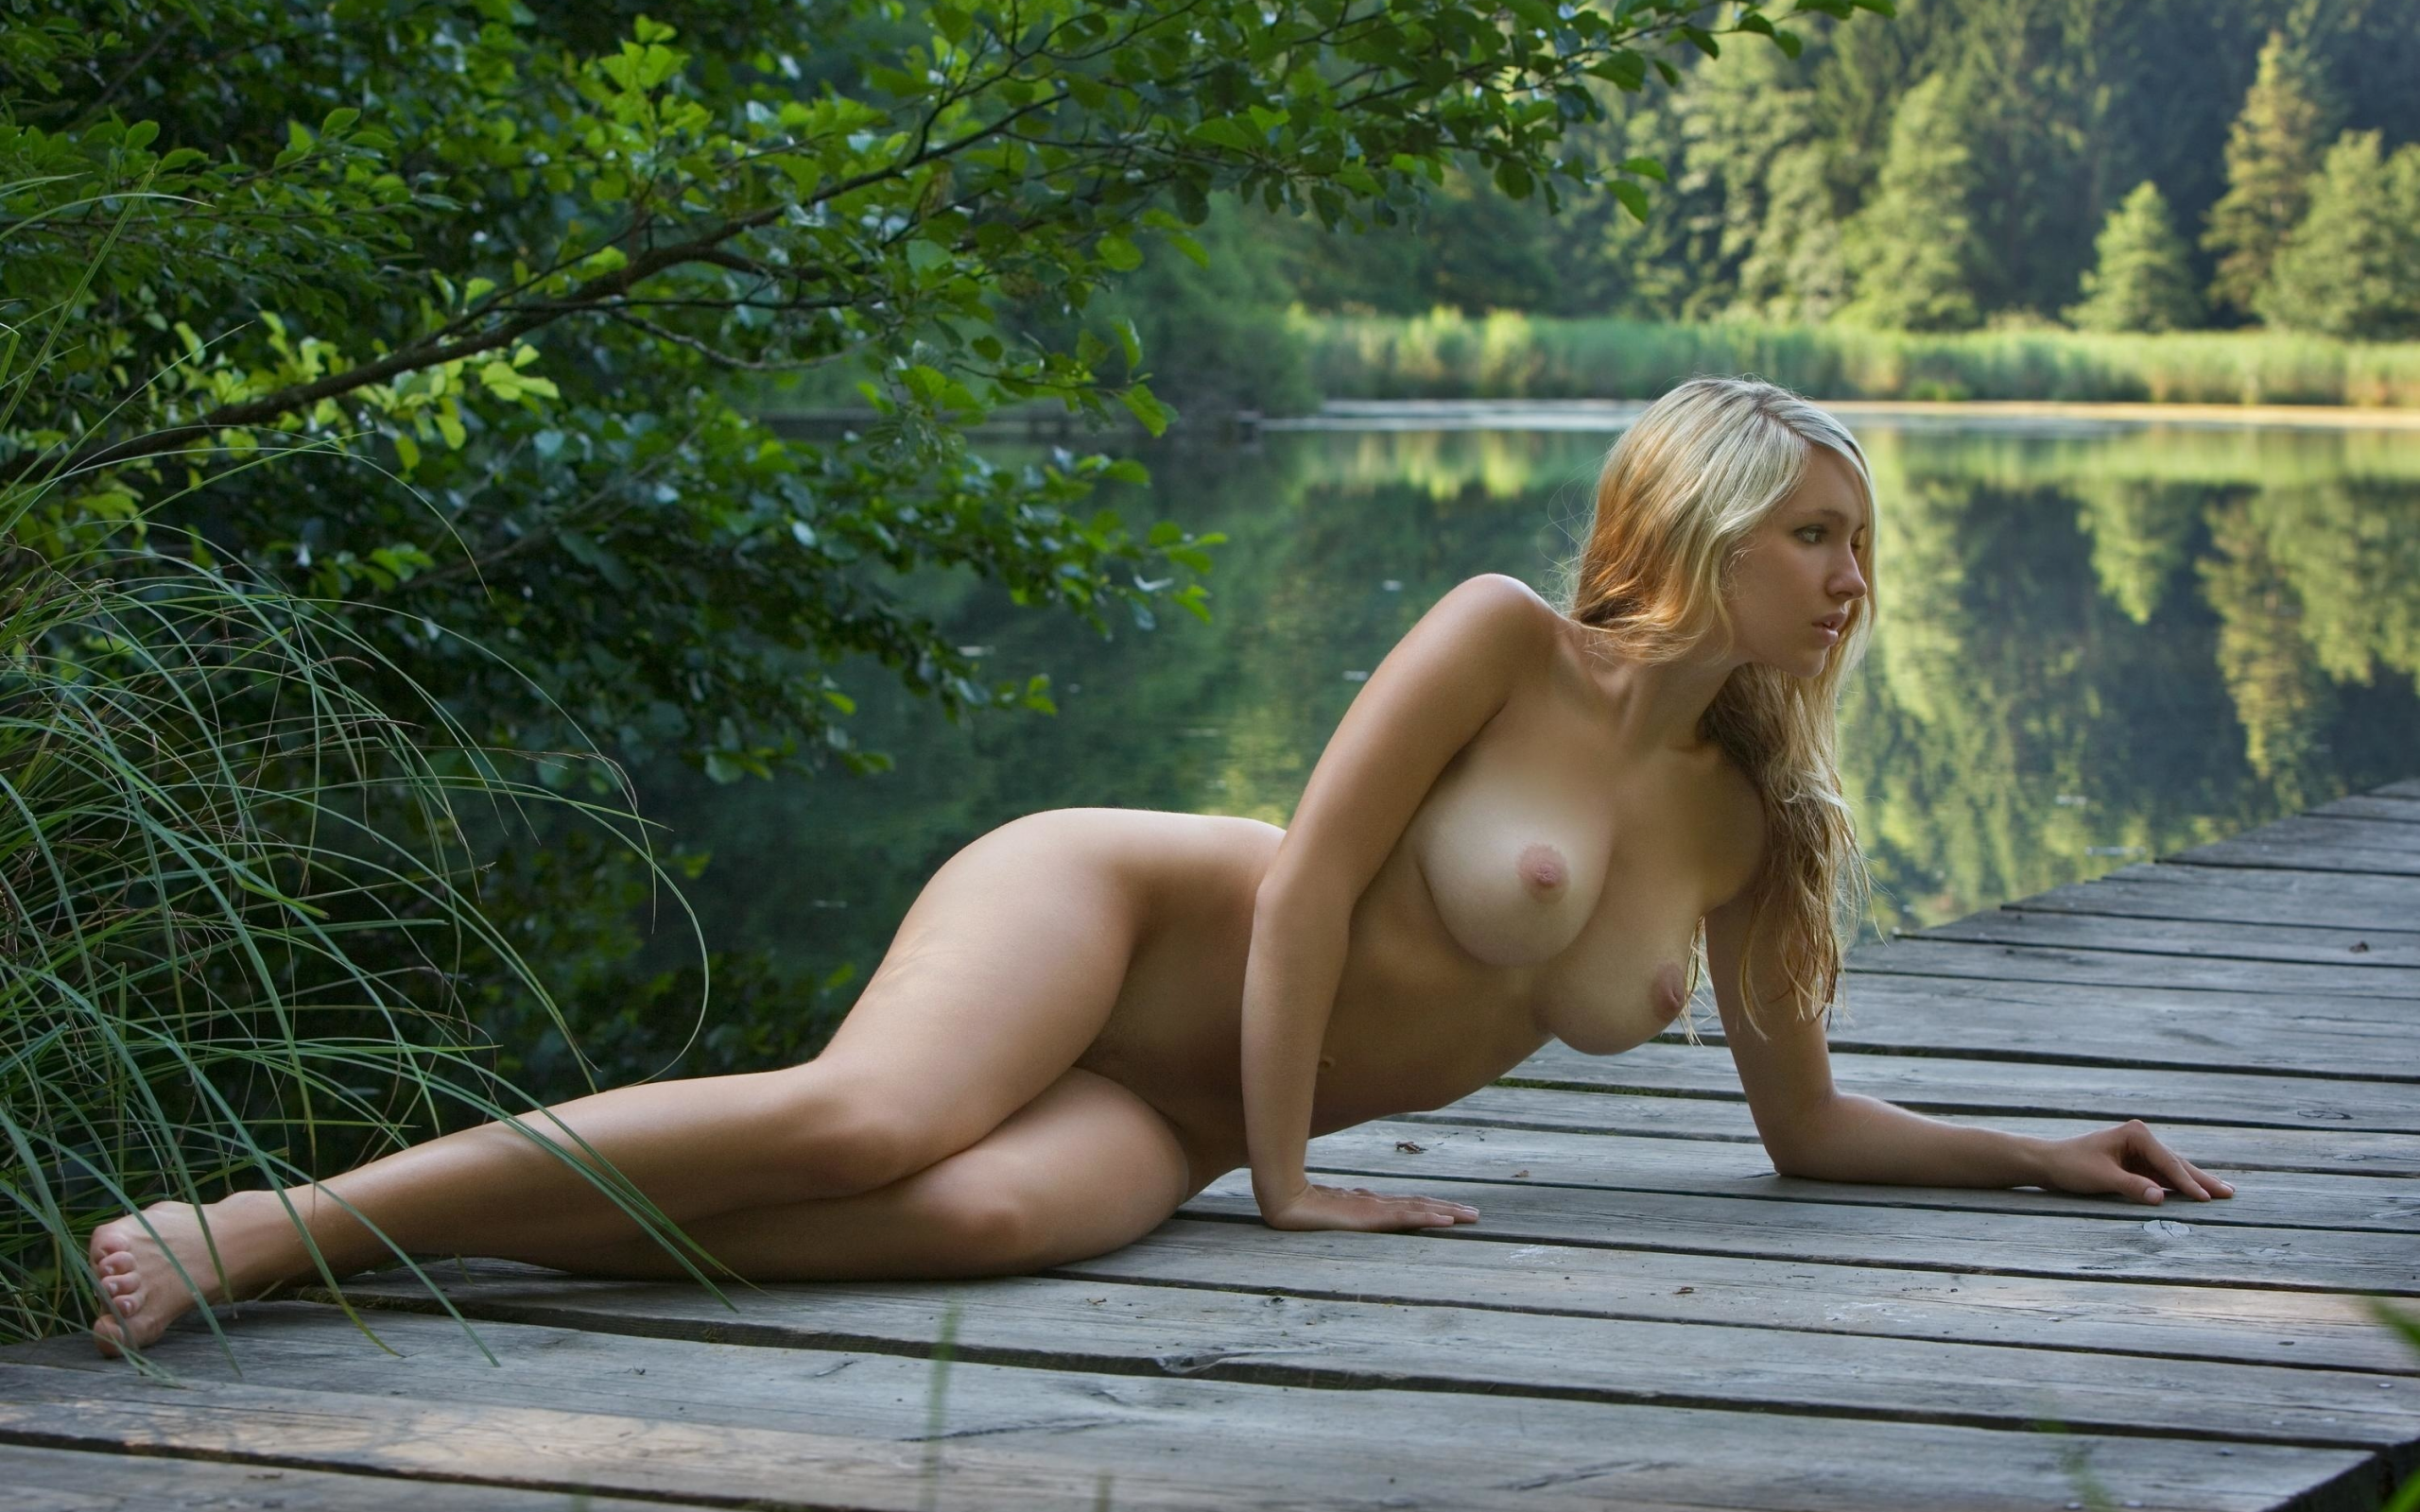 Violla fun and playful personality stands out in a outdoor shoot with matiss